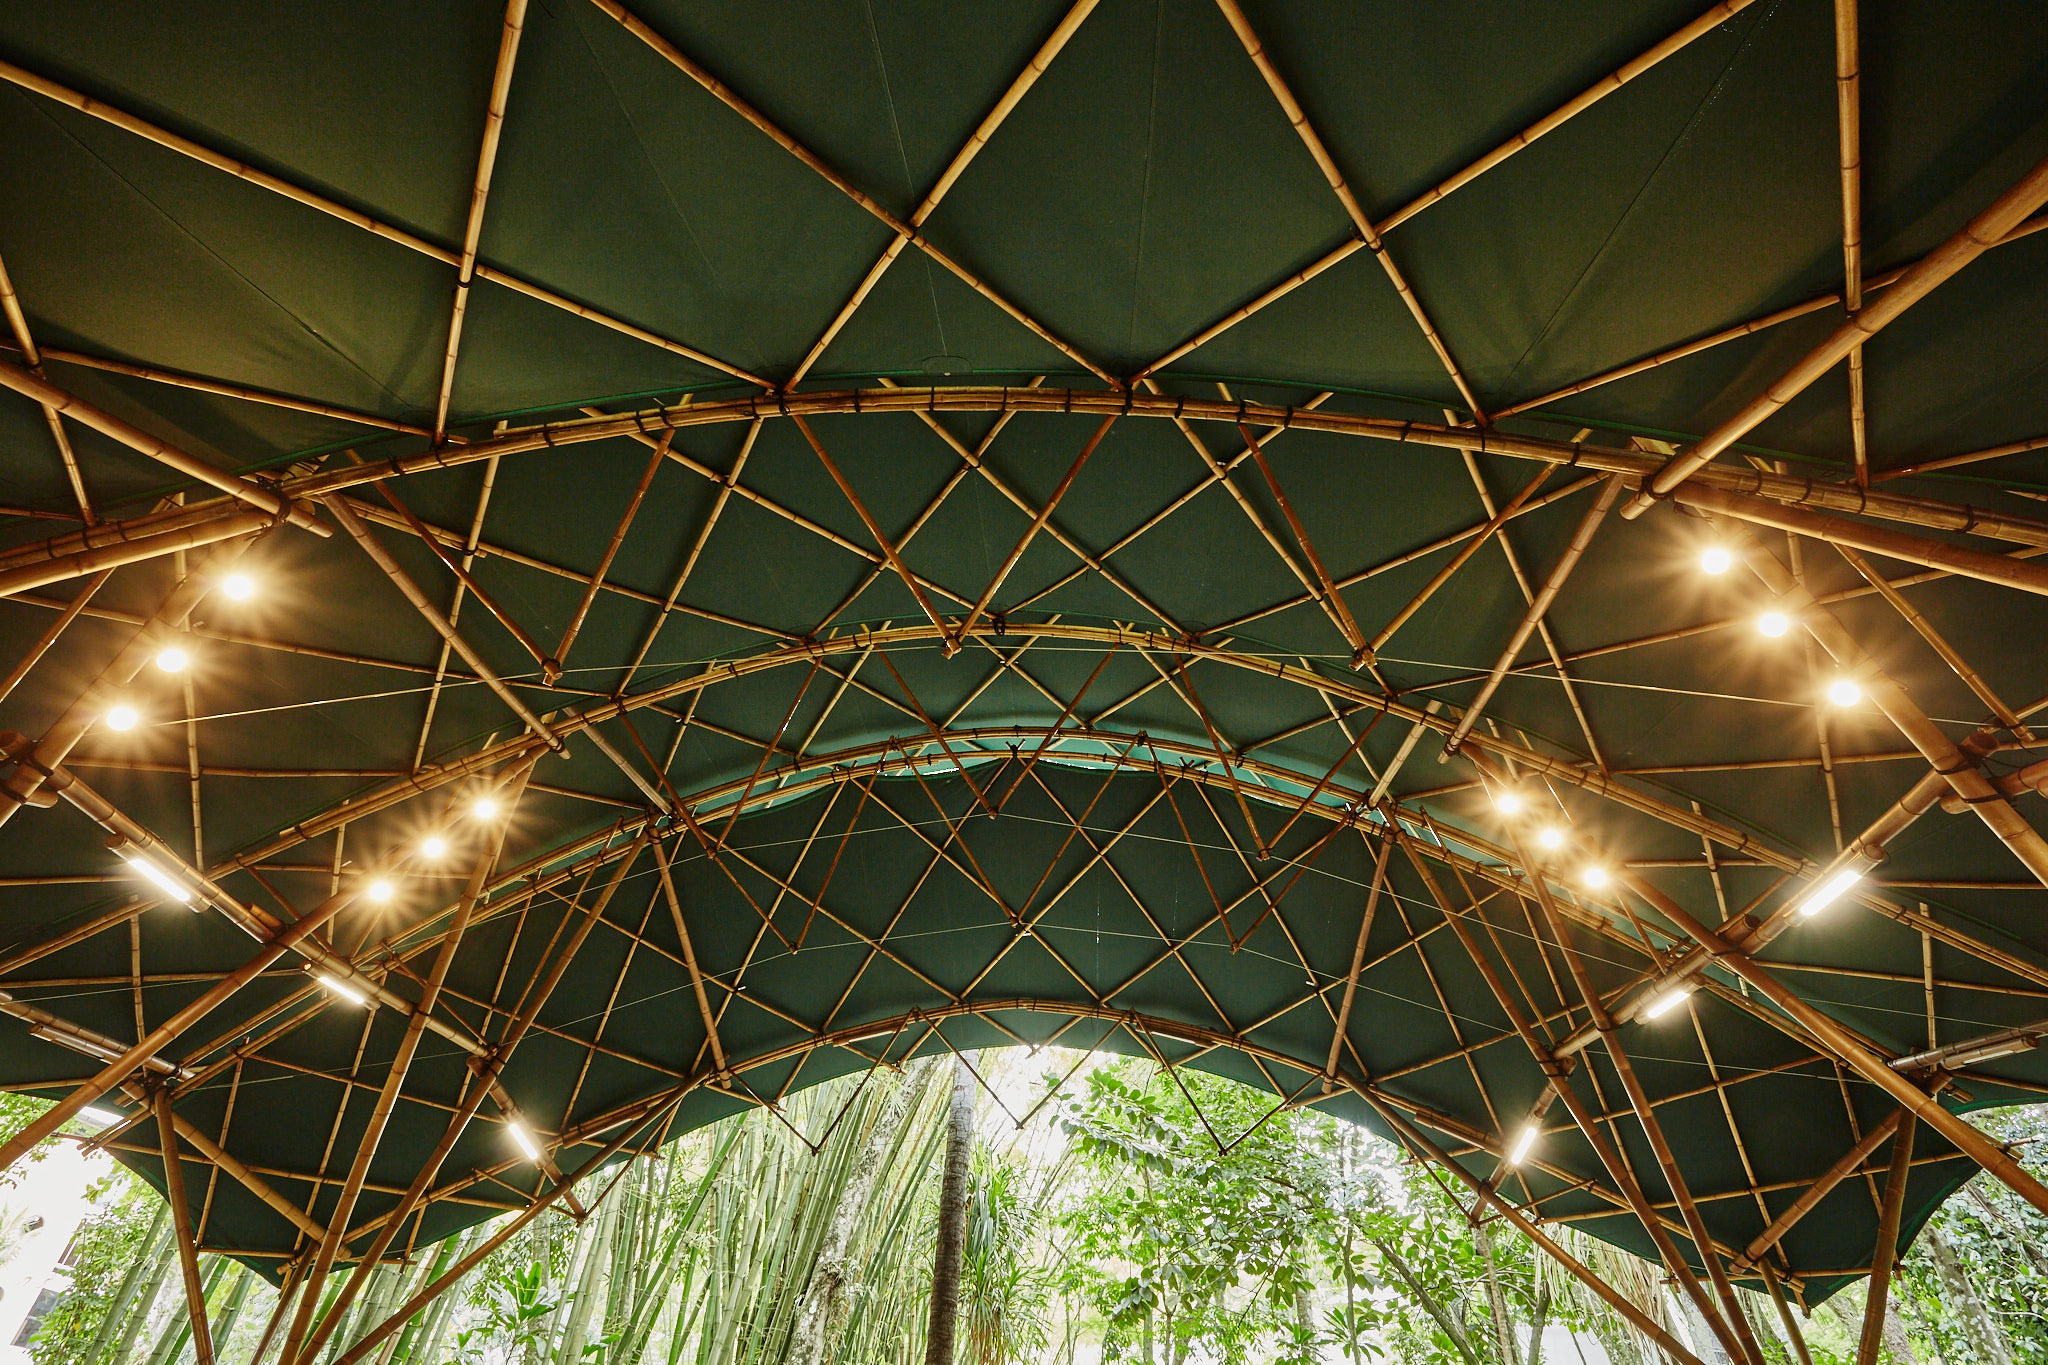 Bamboo-Active-Bending-Textile-Hybrid-Space-Structure-Roof.jpg